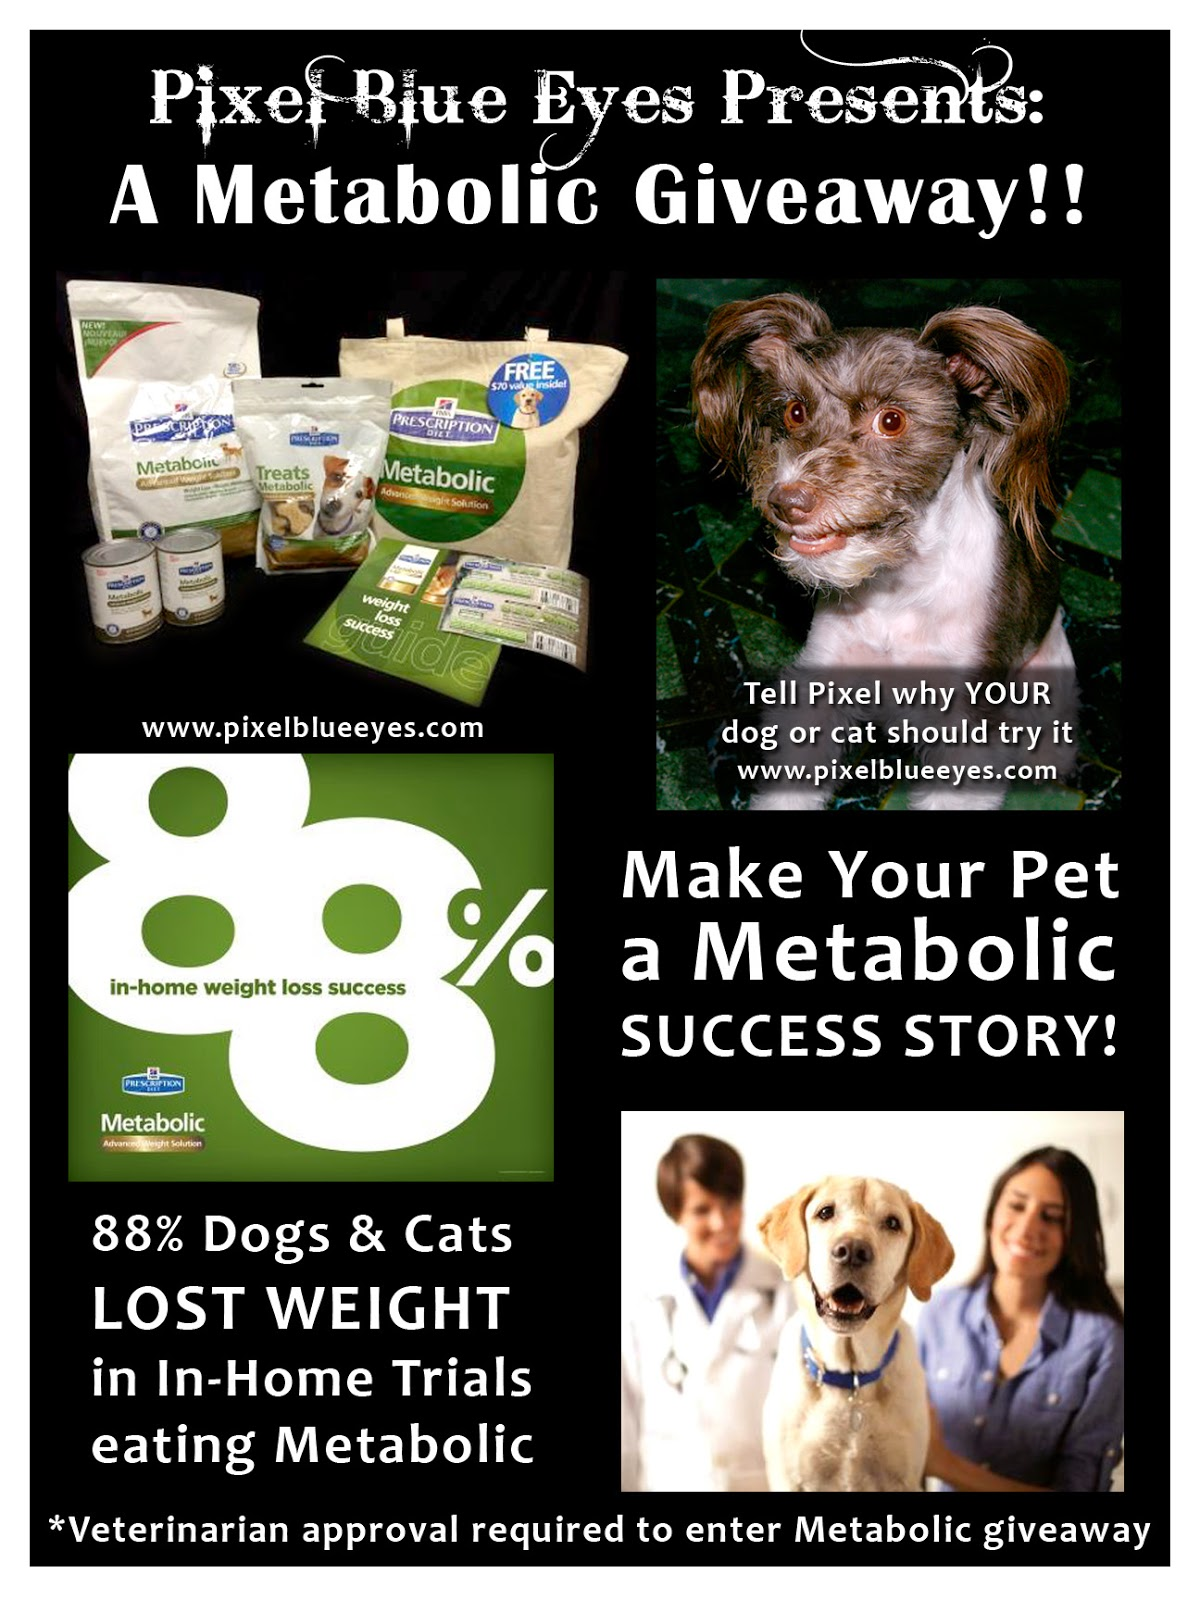 Pixel Blue Eyes is hosting a Giveaway Sponsored by Hill's Pet - Must get Vet approval to enter